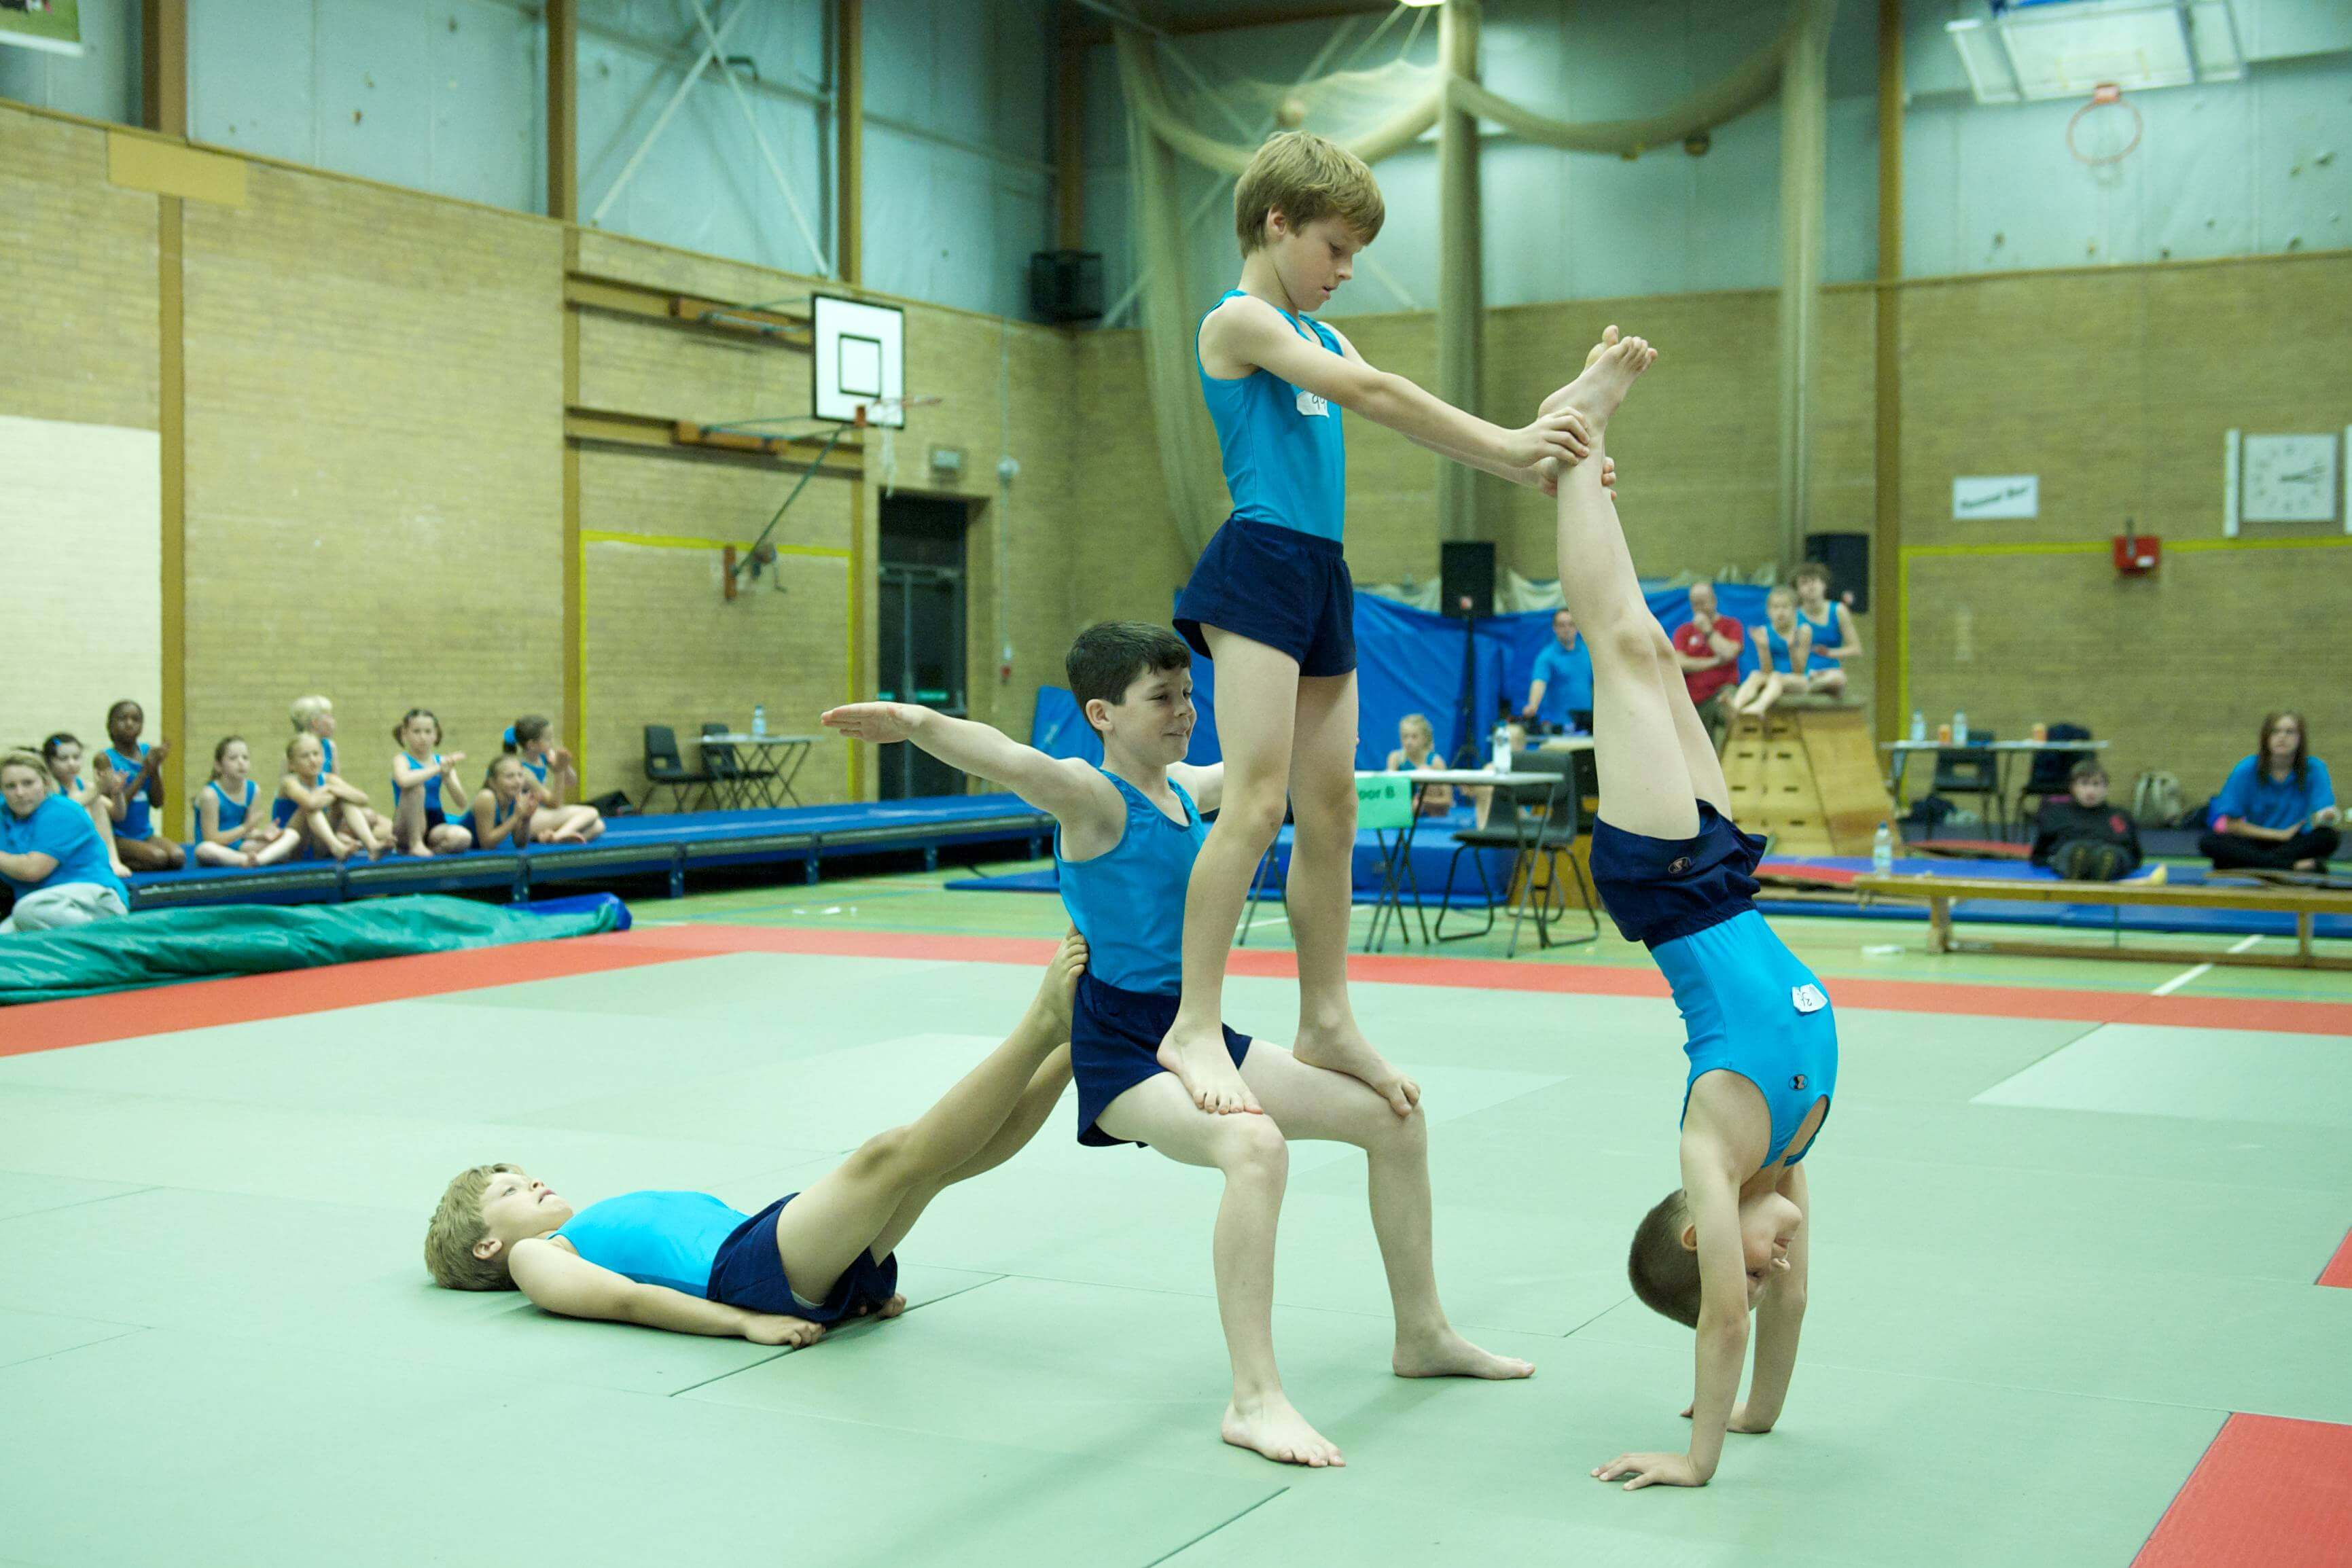 gymnasts learning